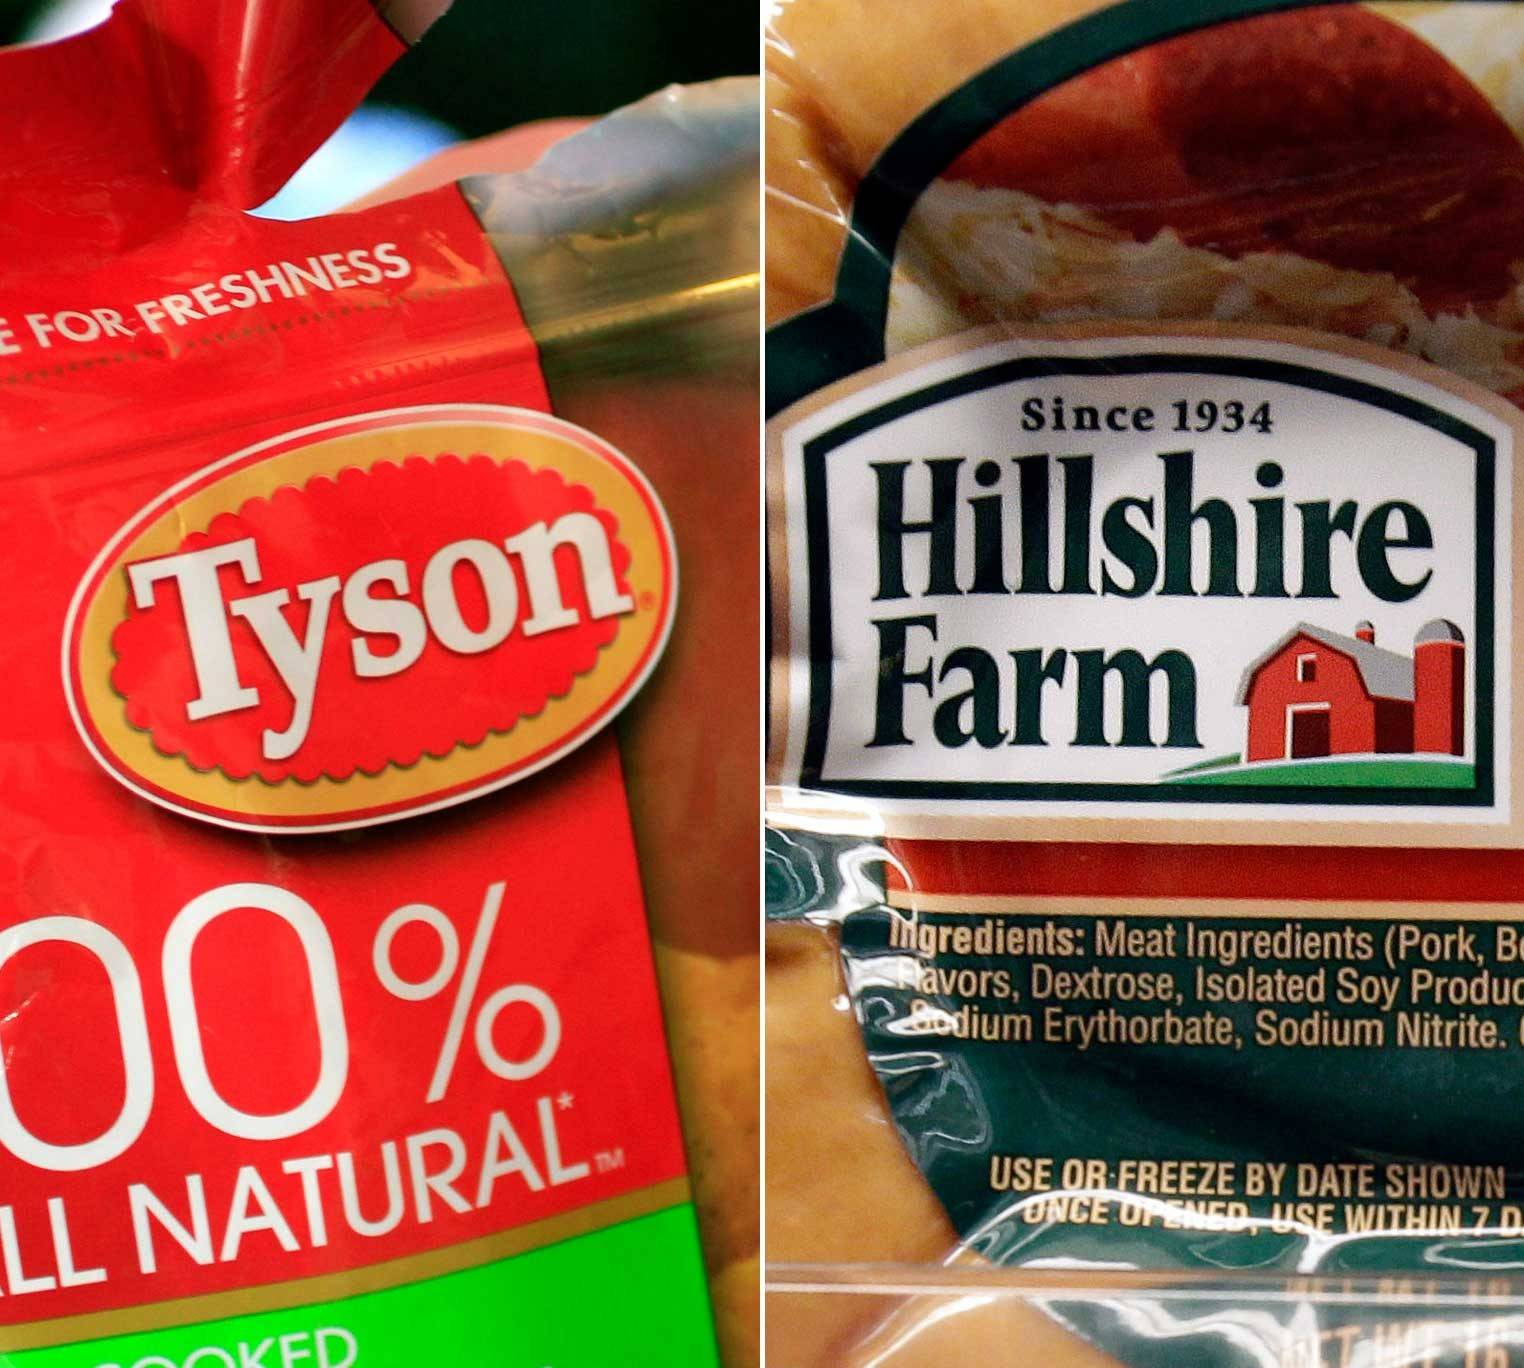 Tyson Foods Inc., the largest U.S. meat company, agreed to buy Chicago-based Hillshire Brands Co. for about $7.7 billion after outbidding Pilgrim's Pride Corp. to gain control of the maker of Jimmy Dean sausages and Ball Park hot dogs.